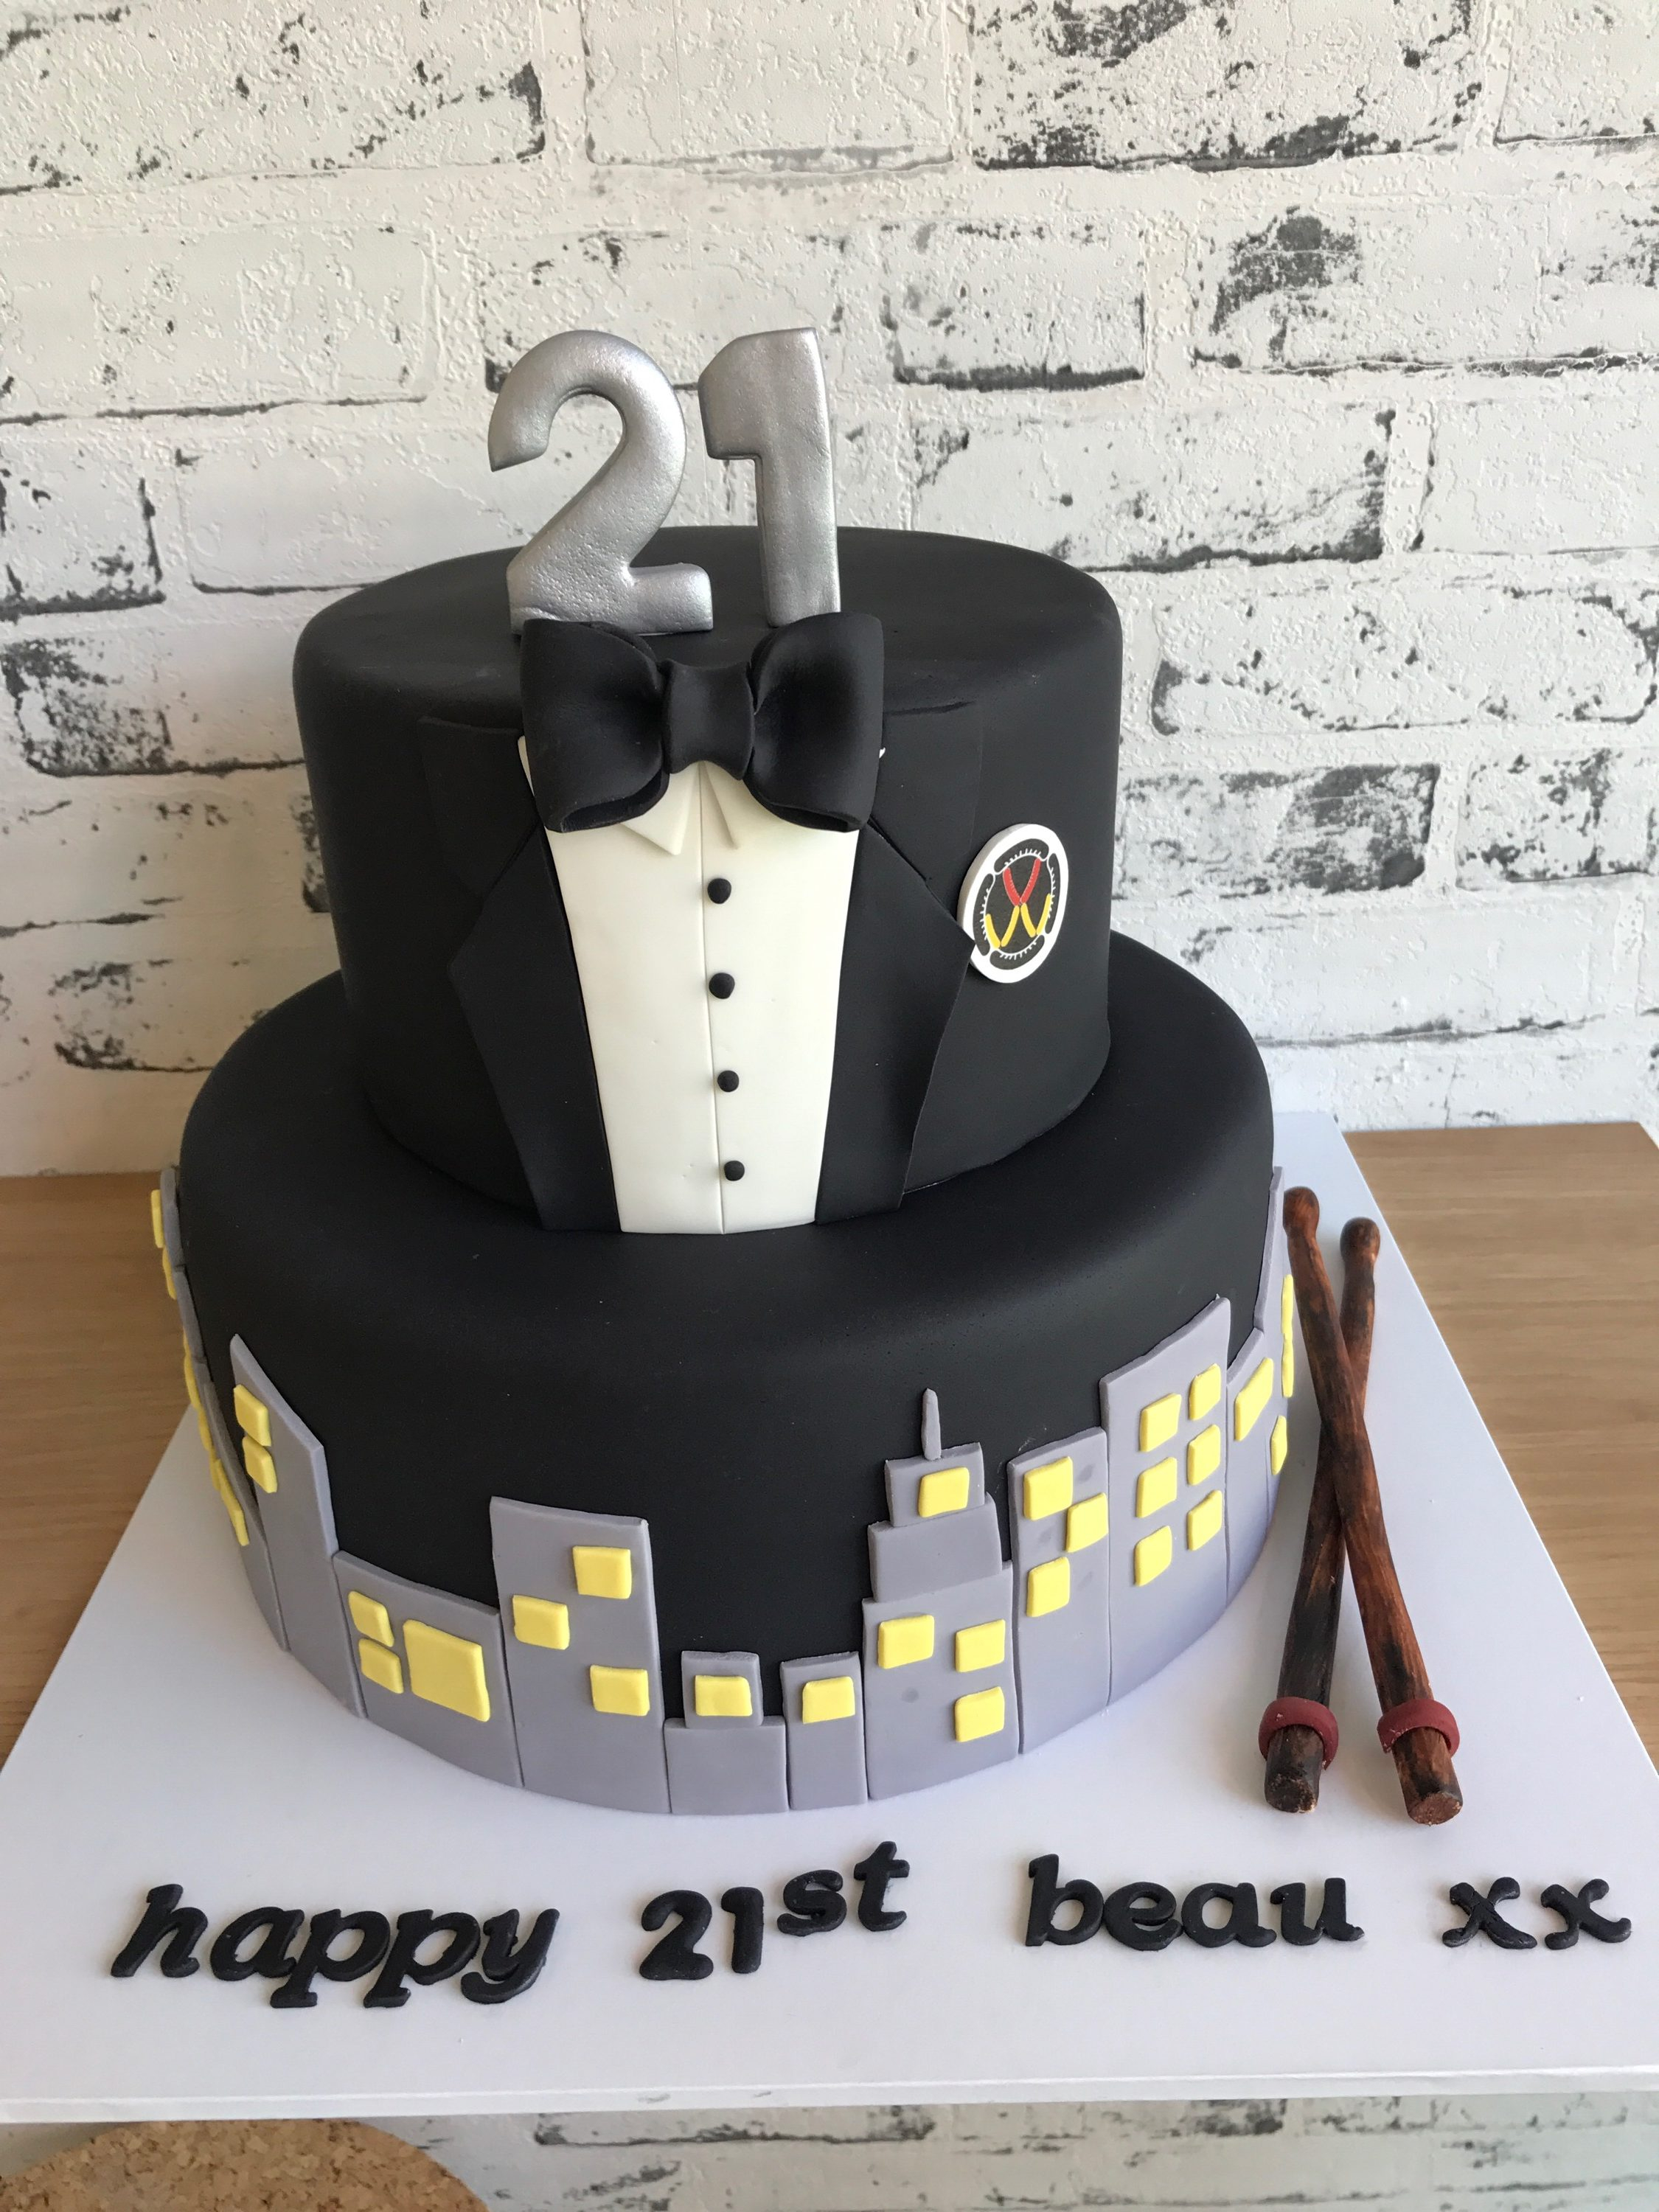 Birthday Cake Designs For Adults Adult Cakes Kiss Me Cake Designer And Speciality Cakes